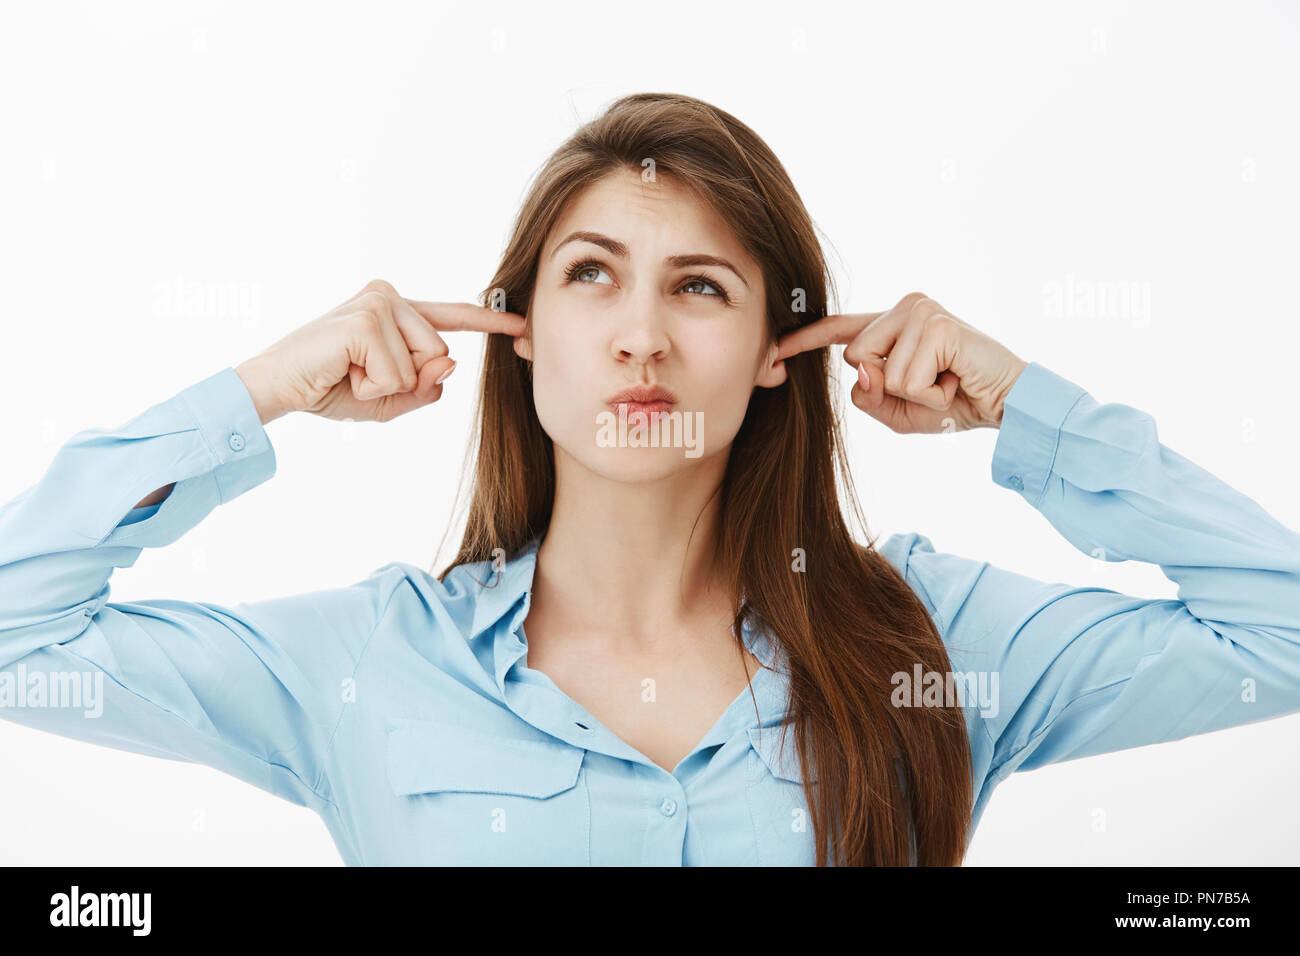 Displeased funny european girl in blue blouse, frowning, covering ears with index finger, looking up with folded lips, being displeased and annoyed, disturbed with loud noise from upstairs - Stock Image